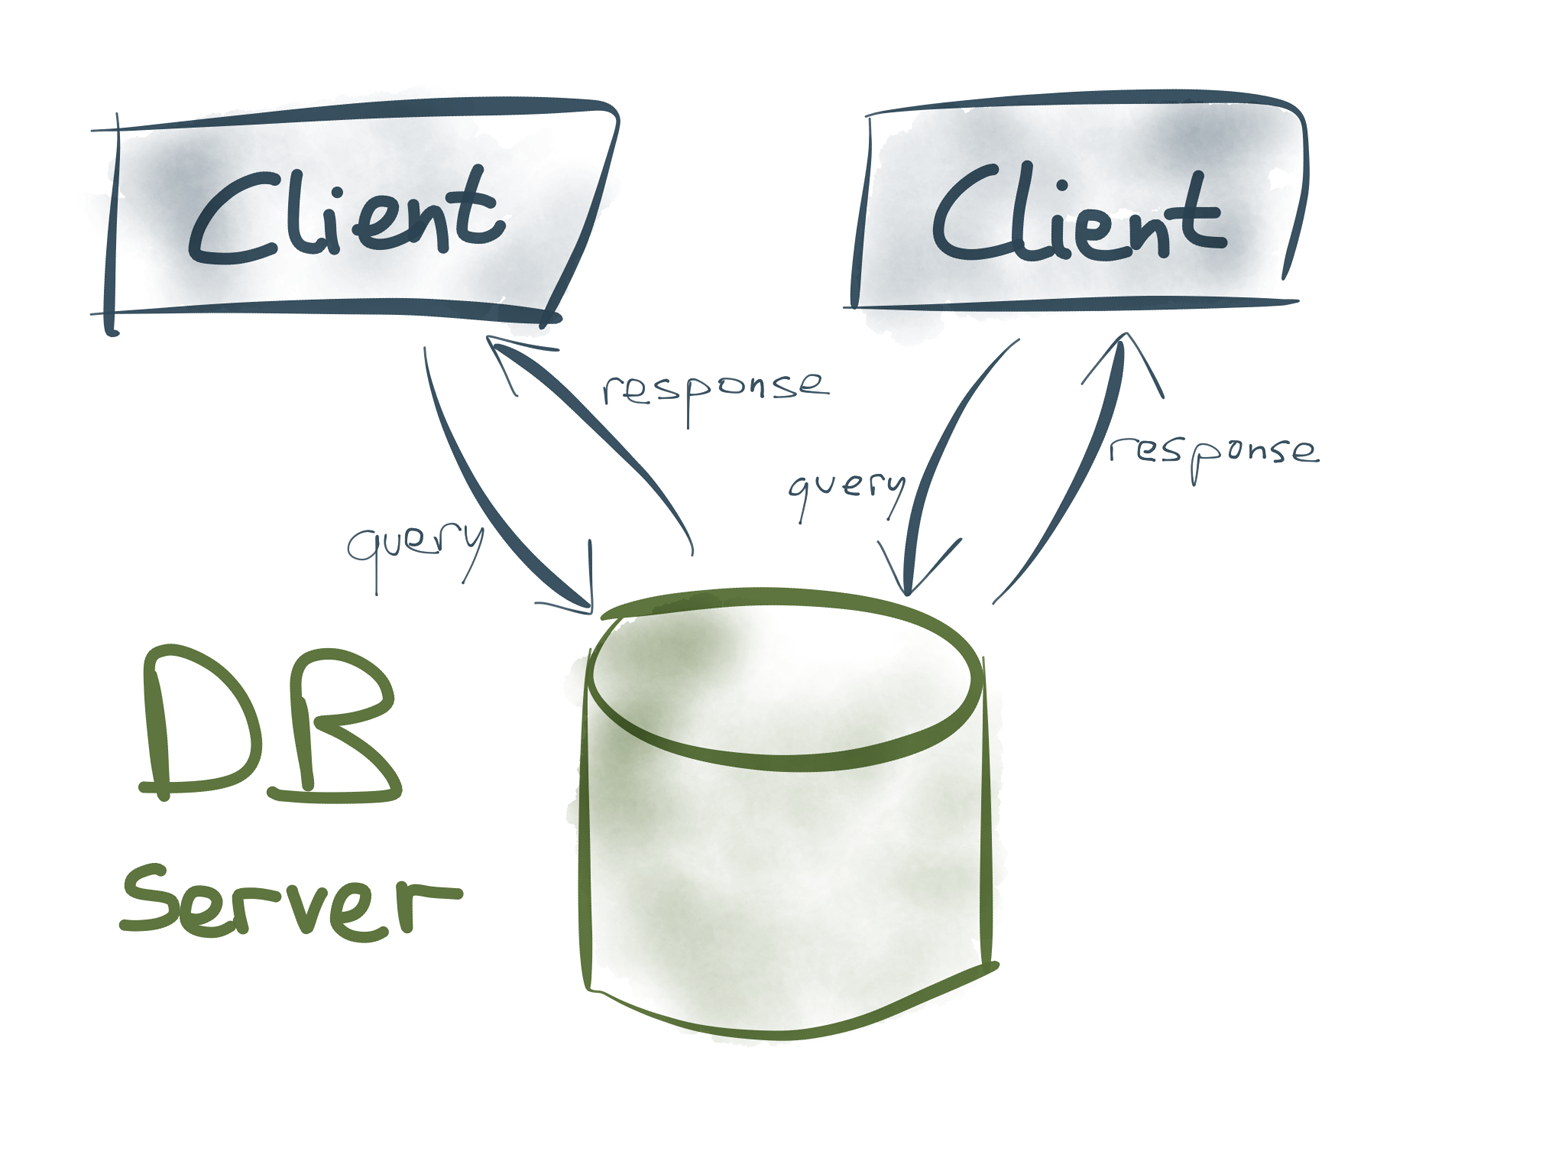 In database systems, servers and clients serve two very different roles.